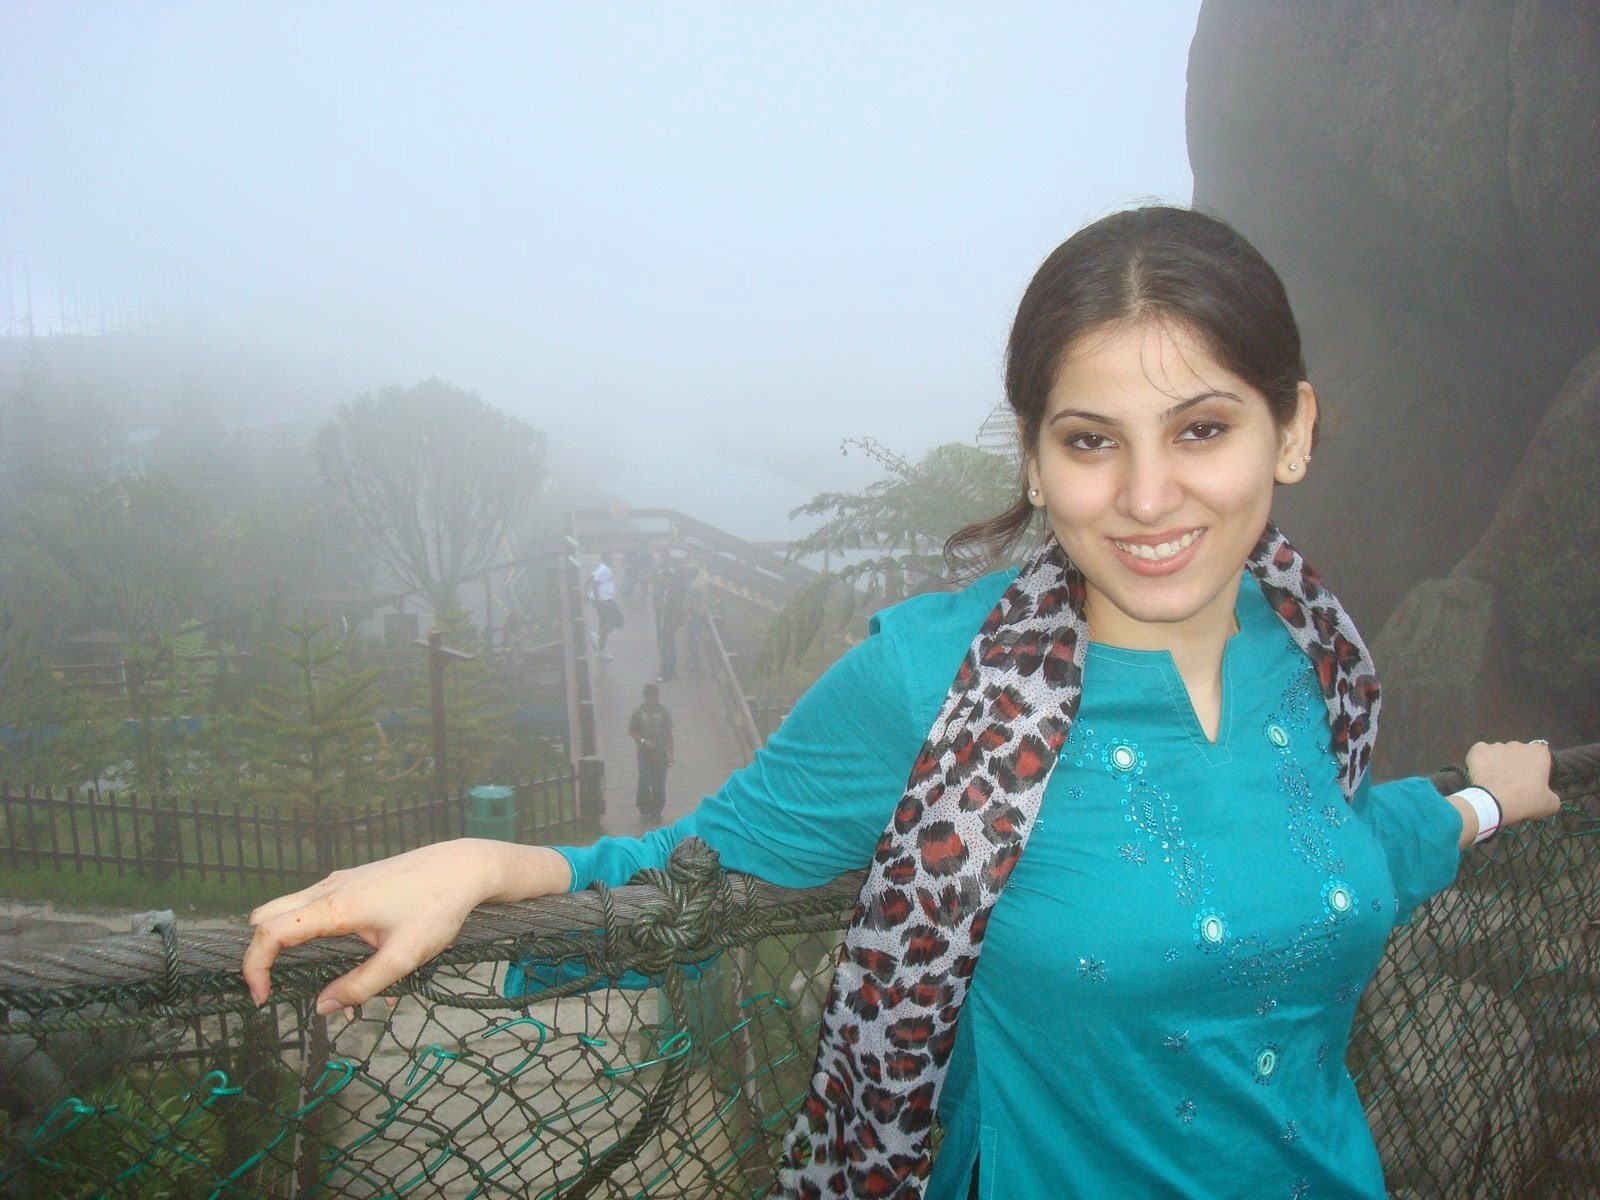 Desi Indian Girls On Himachal Pradesh Tourist Trip Hd -9121